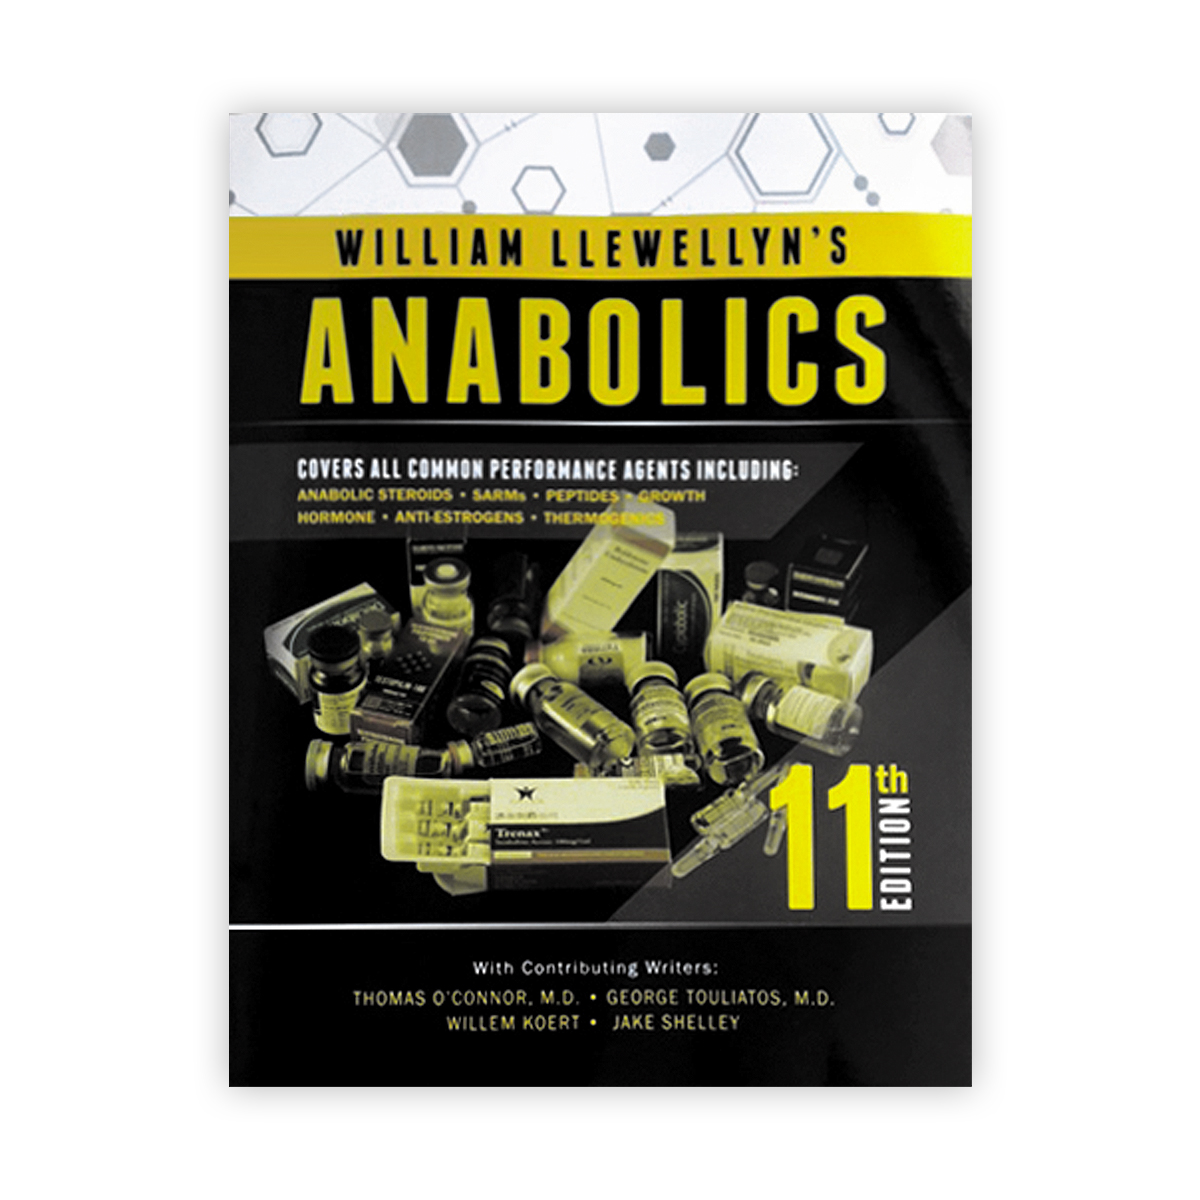 Anabolics 11th Edition by William Llewellyn (out of print)